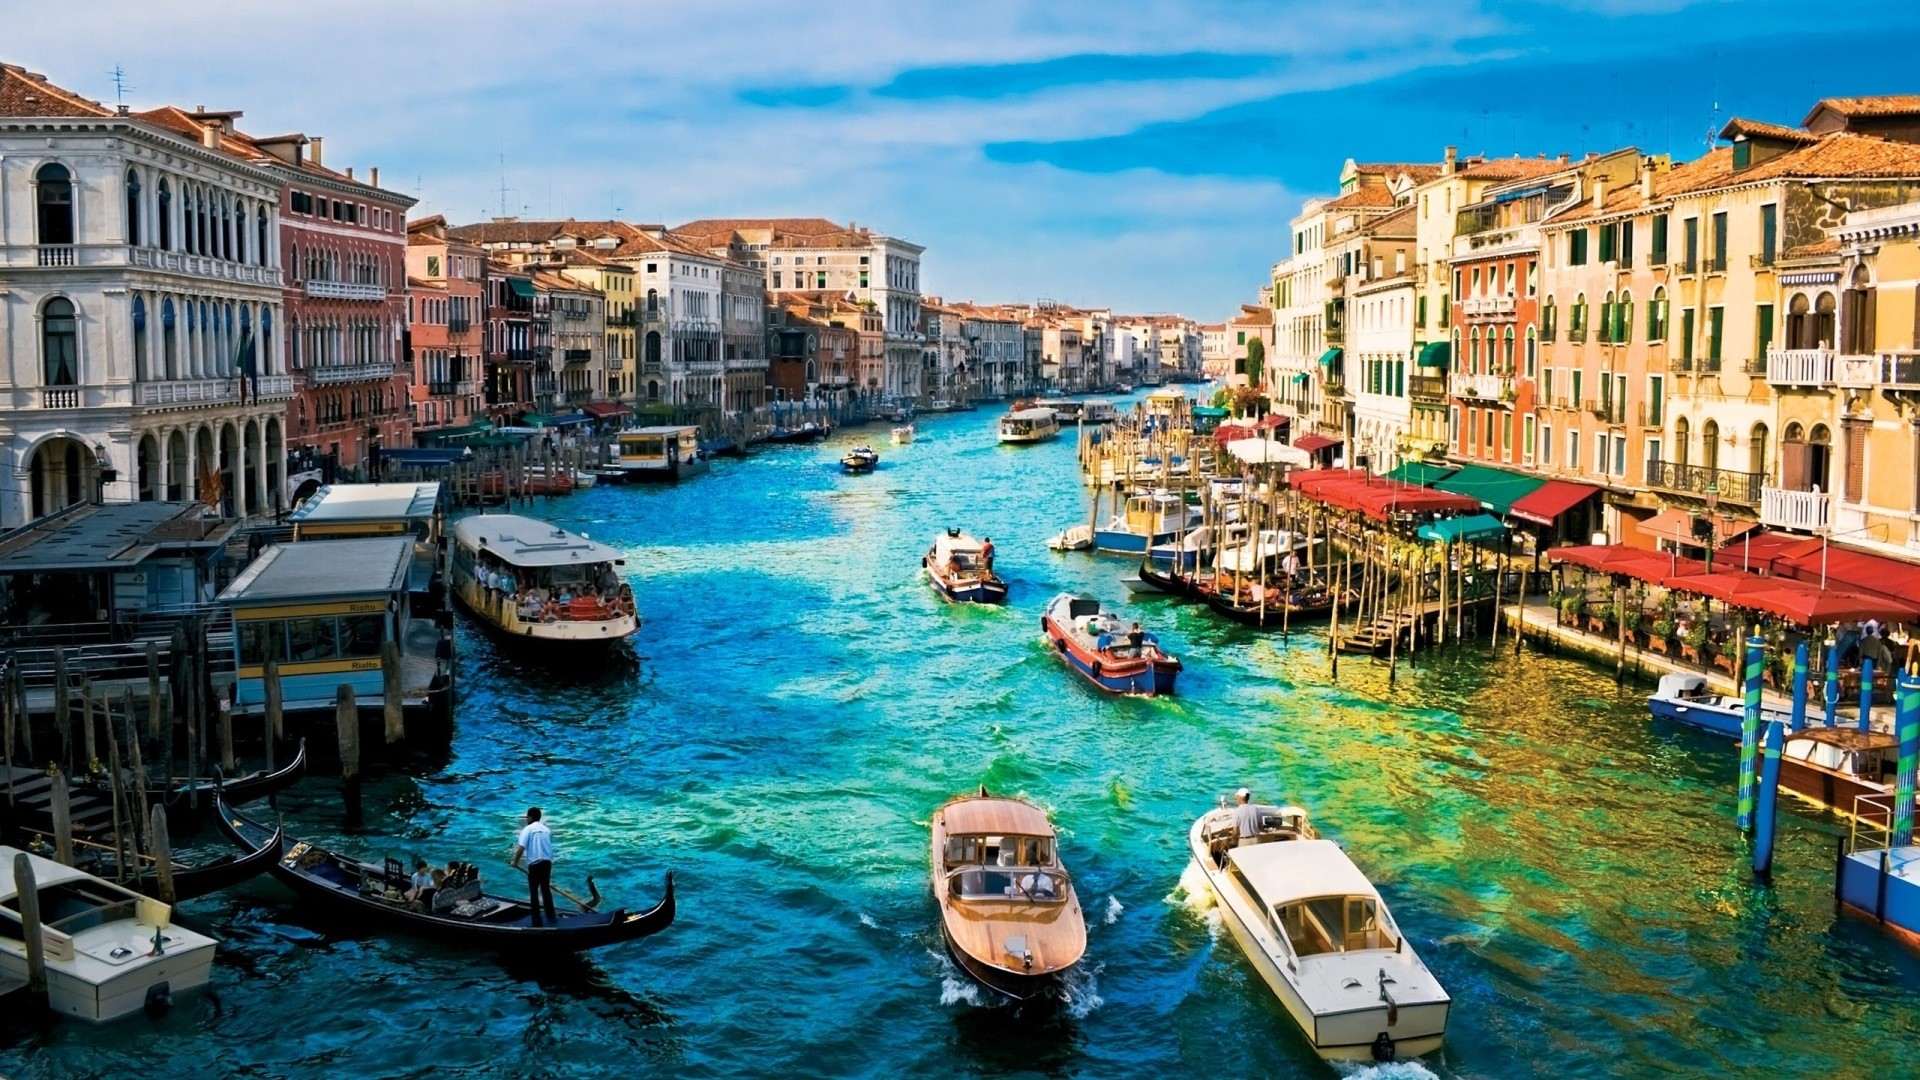 1920x1080 Canal-Grande-Venice-Background-for-Mac